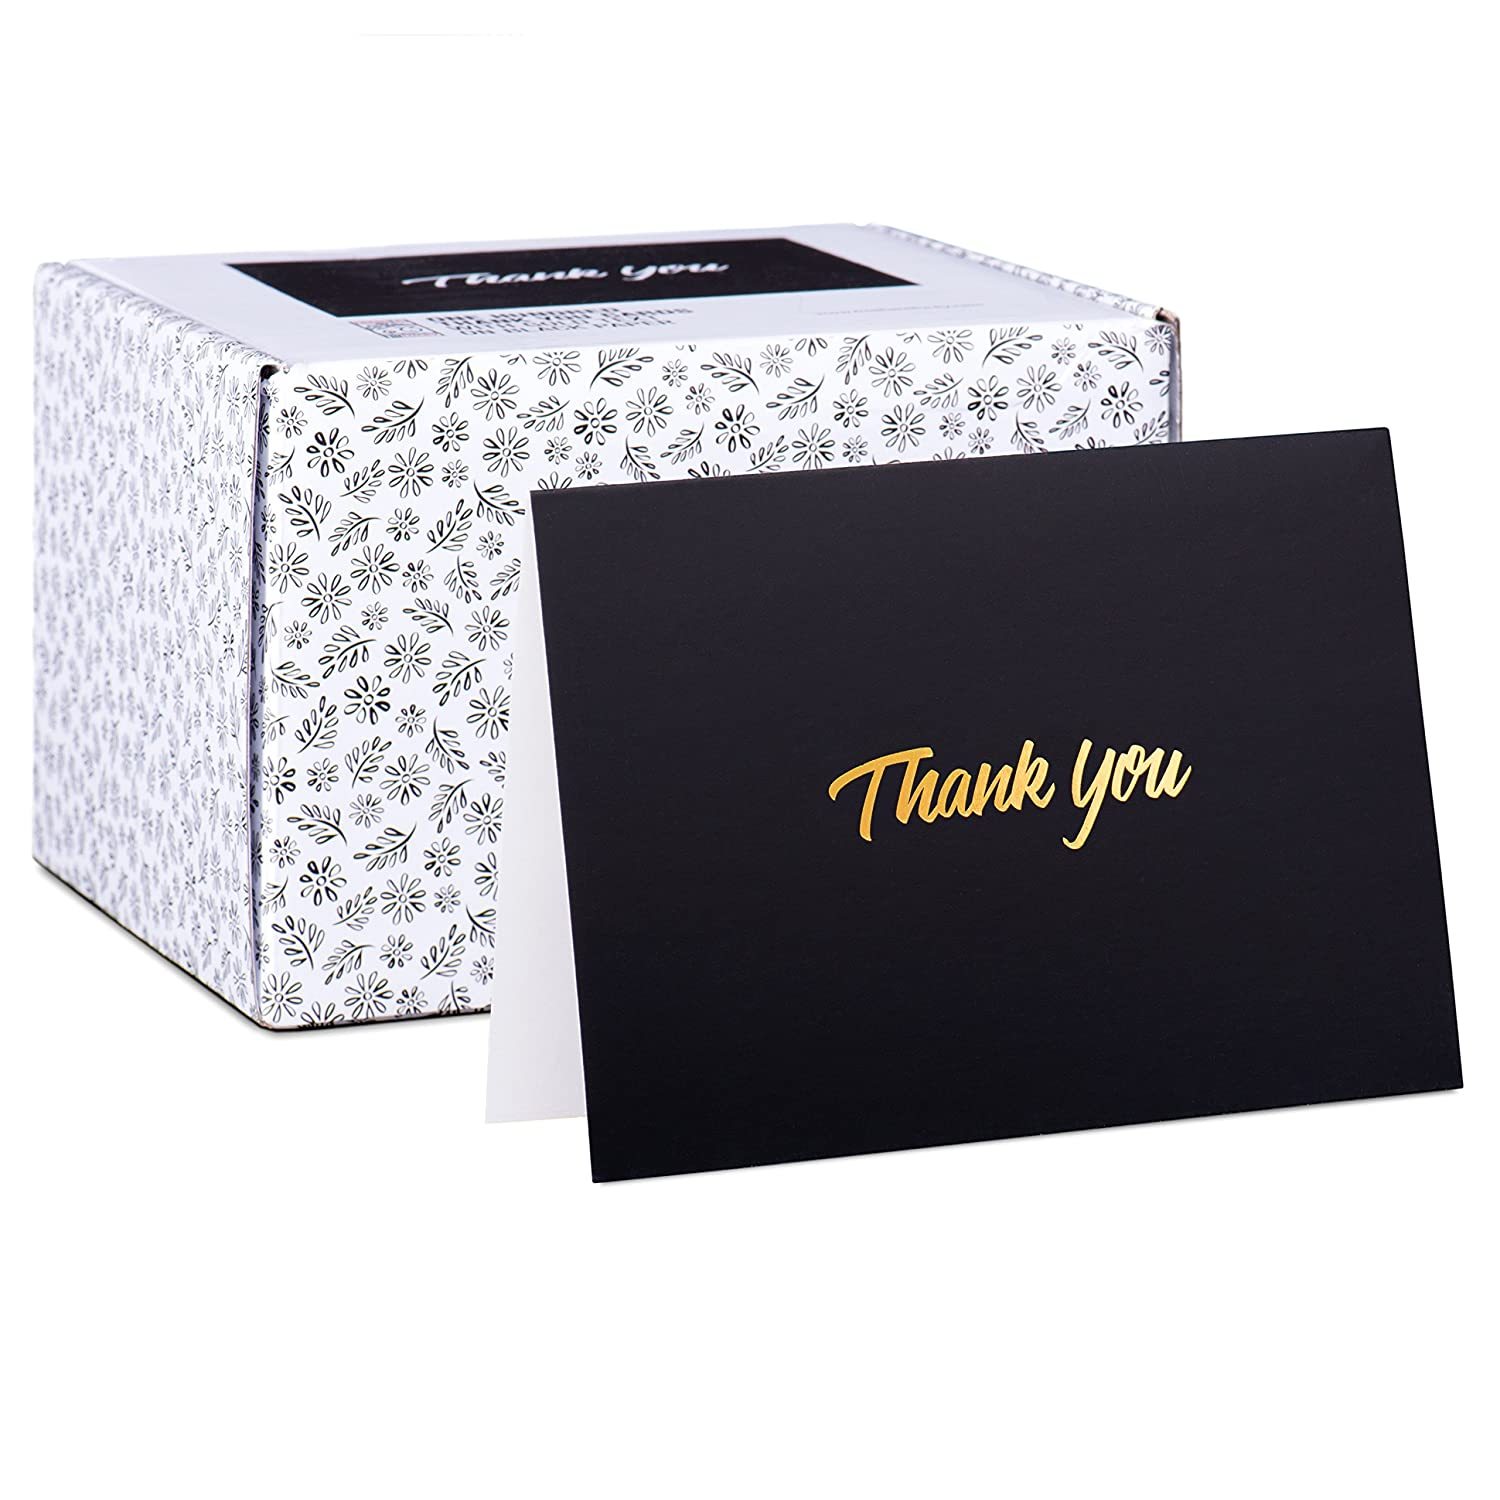 Greeting cards shop amazon 100 thank you cards black bulk note cards with gold foil embossed letters perfect magicingreecefo Choice Image